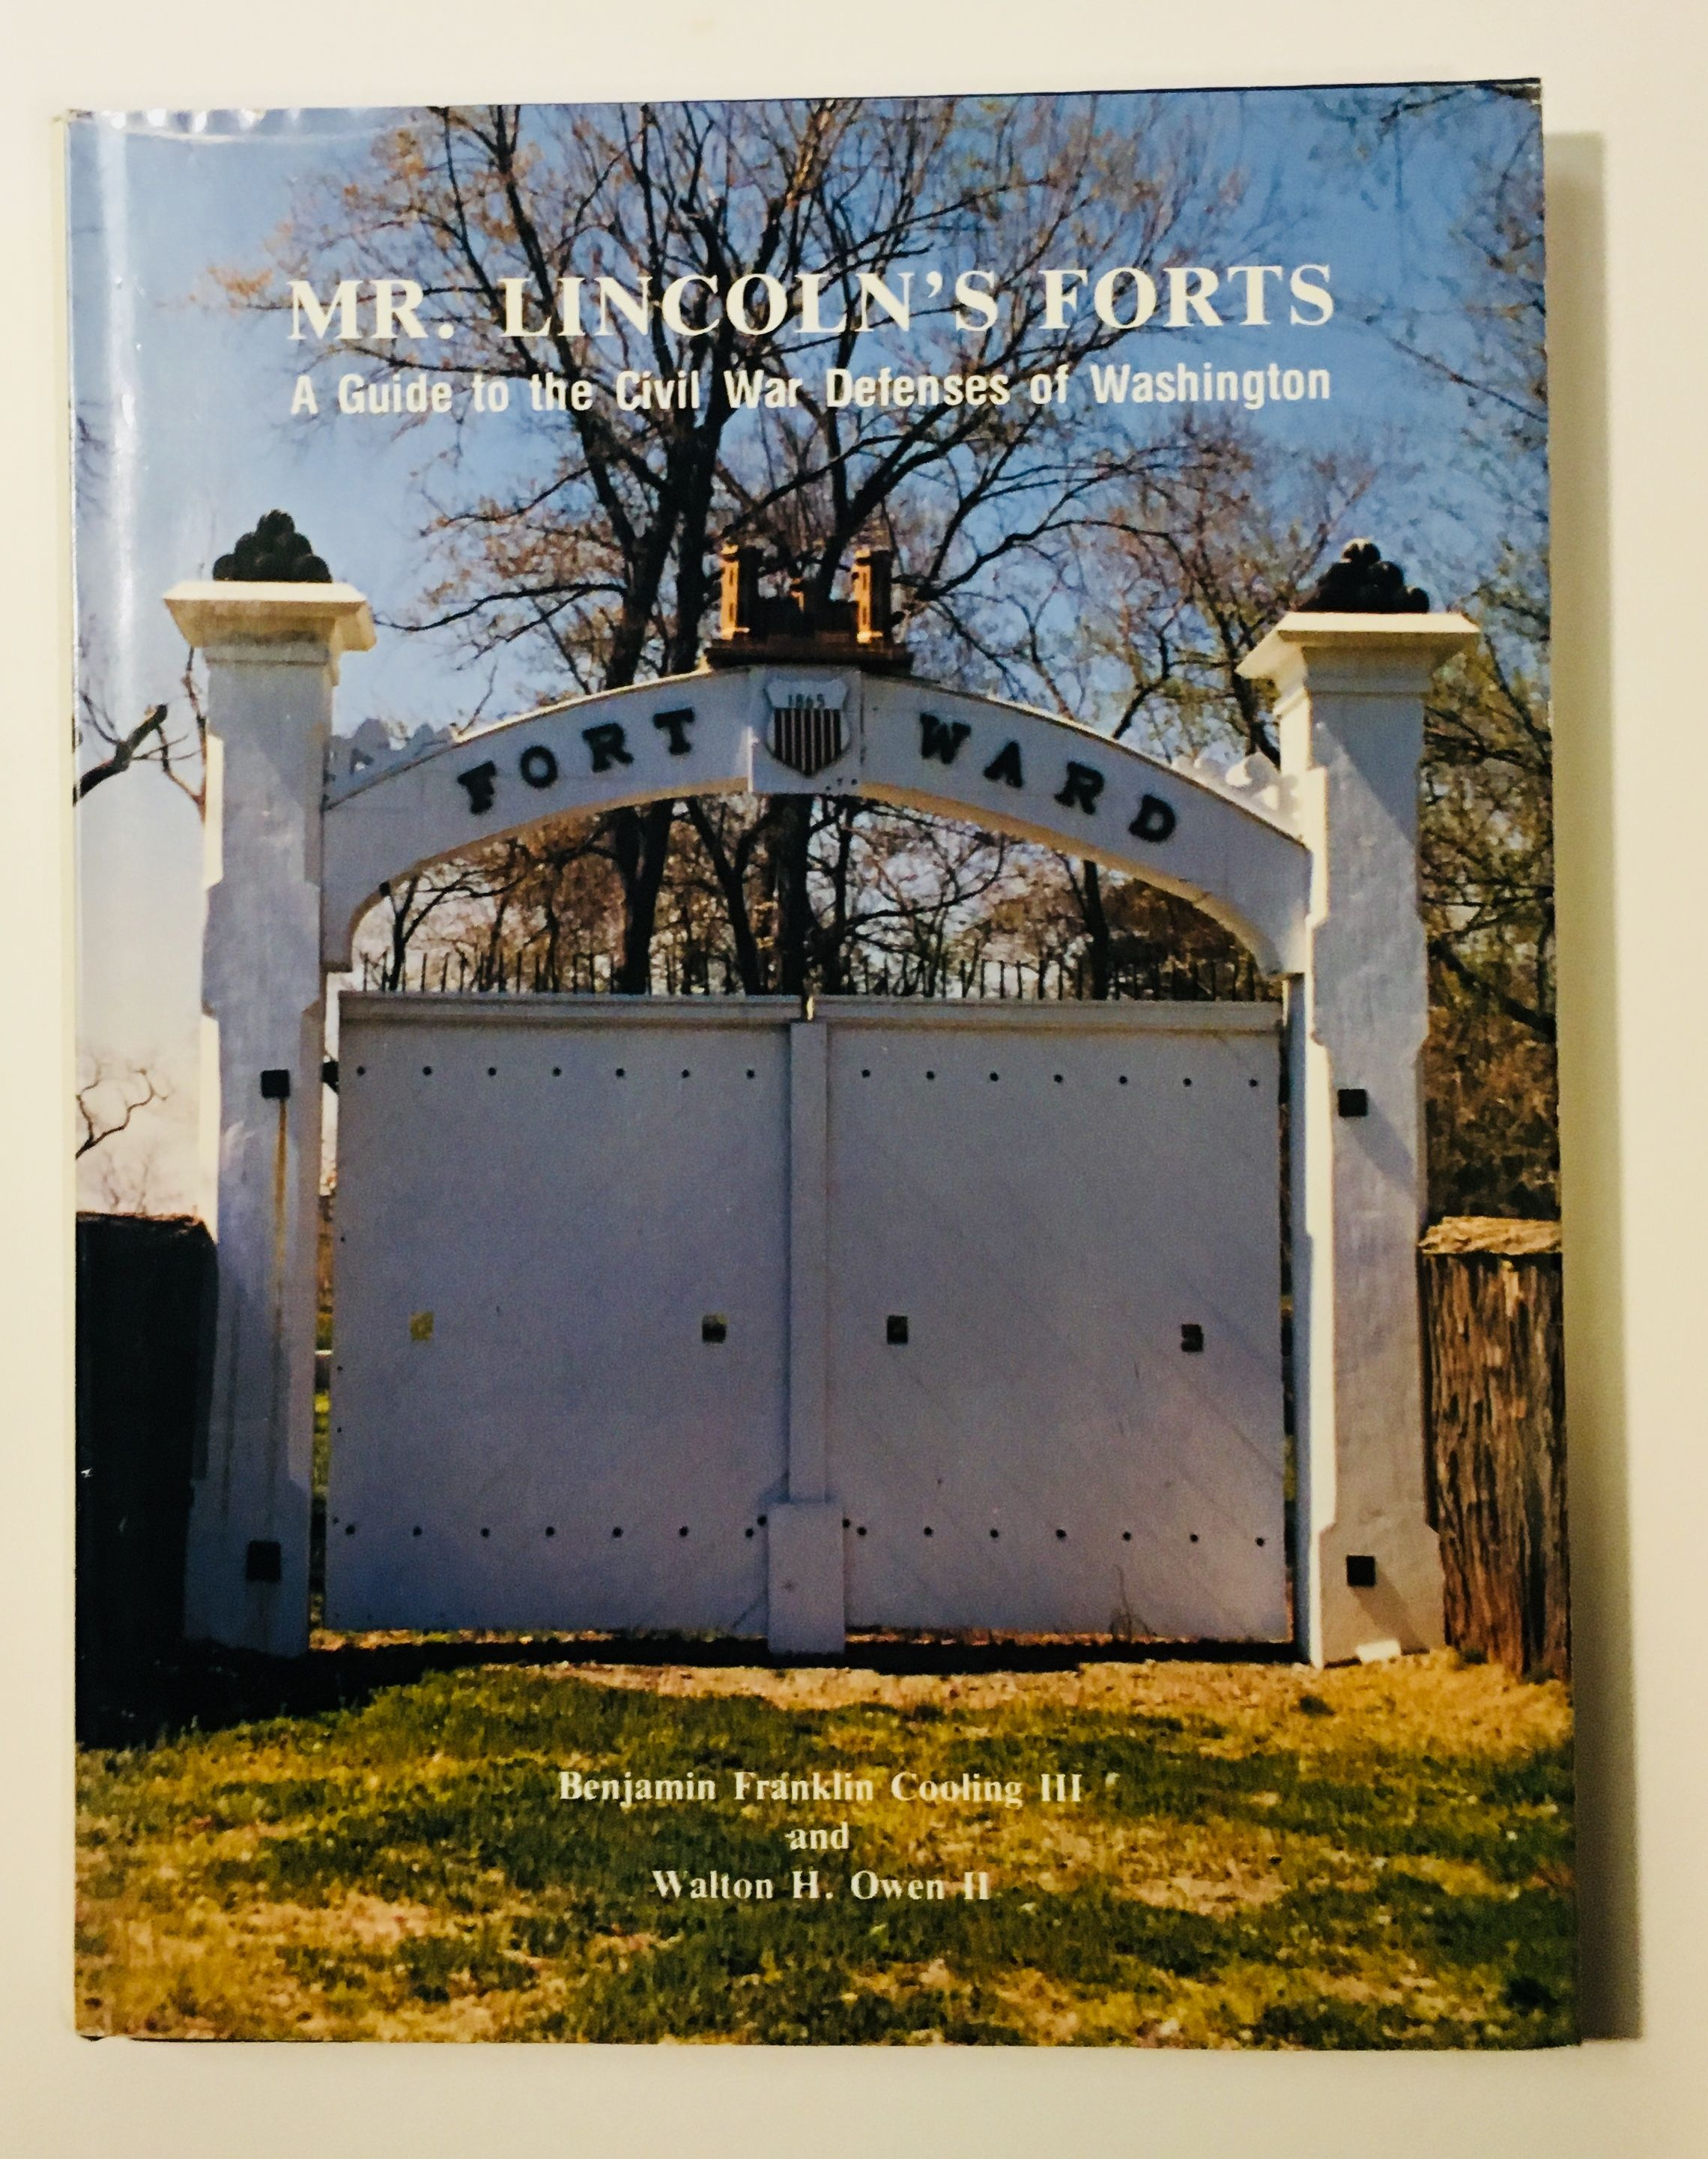 Mr. Lincoln's forts: A guide to the Civil War defenses of Washington, Cooling, B. Franklin